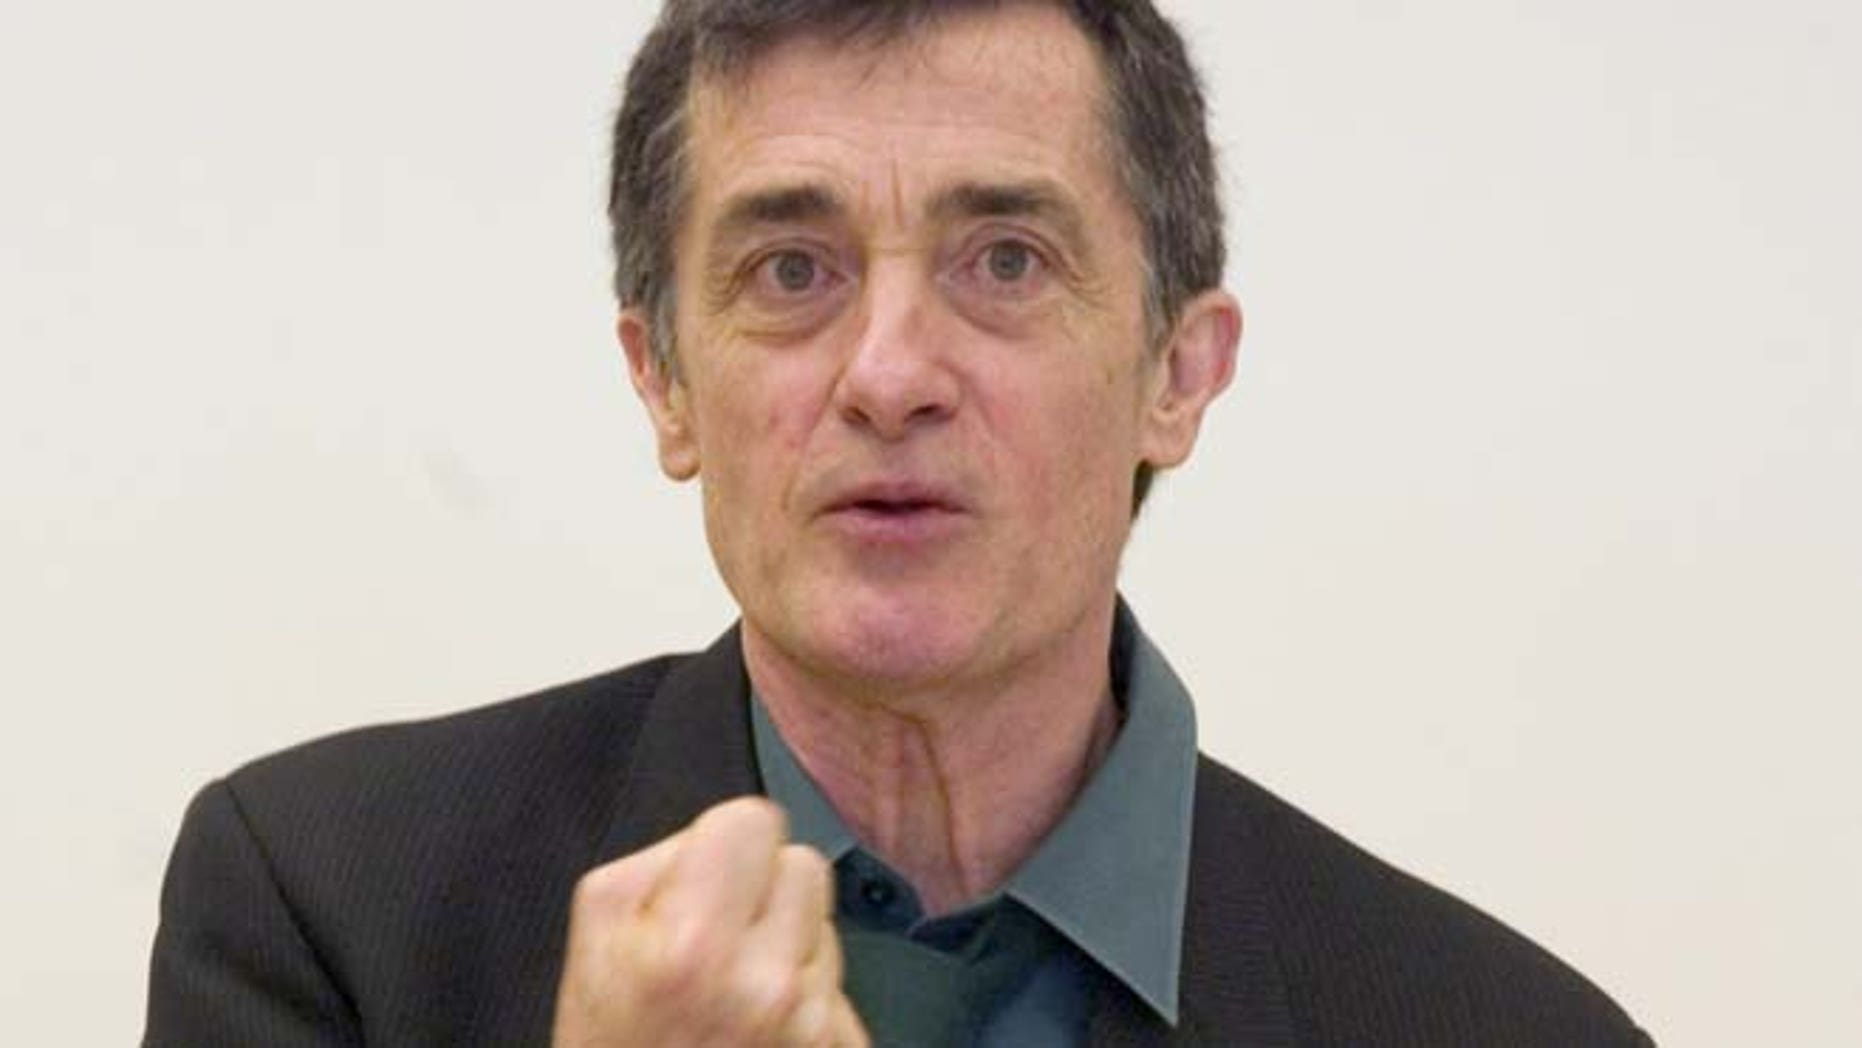 FILE 2006: Roger Rees, artistic director of the Williamstown Theatre Festival in Williamstown, Mass., introduced the 2006 season during a news conference in New York.